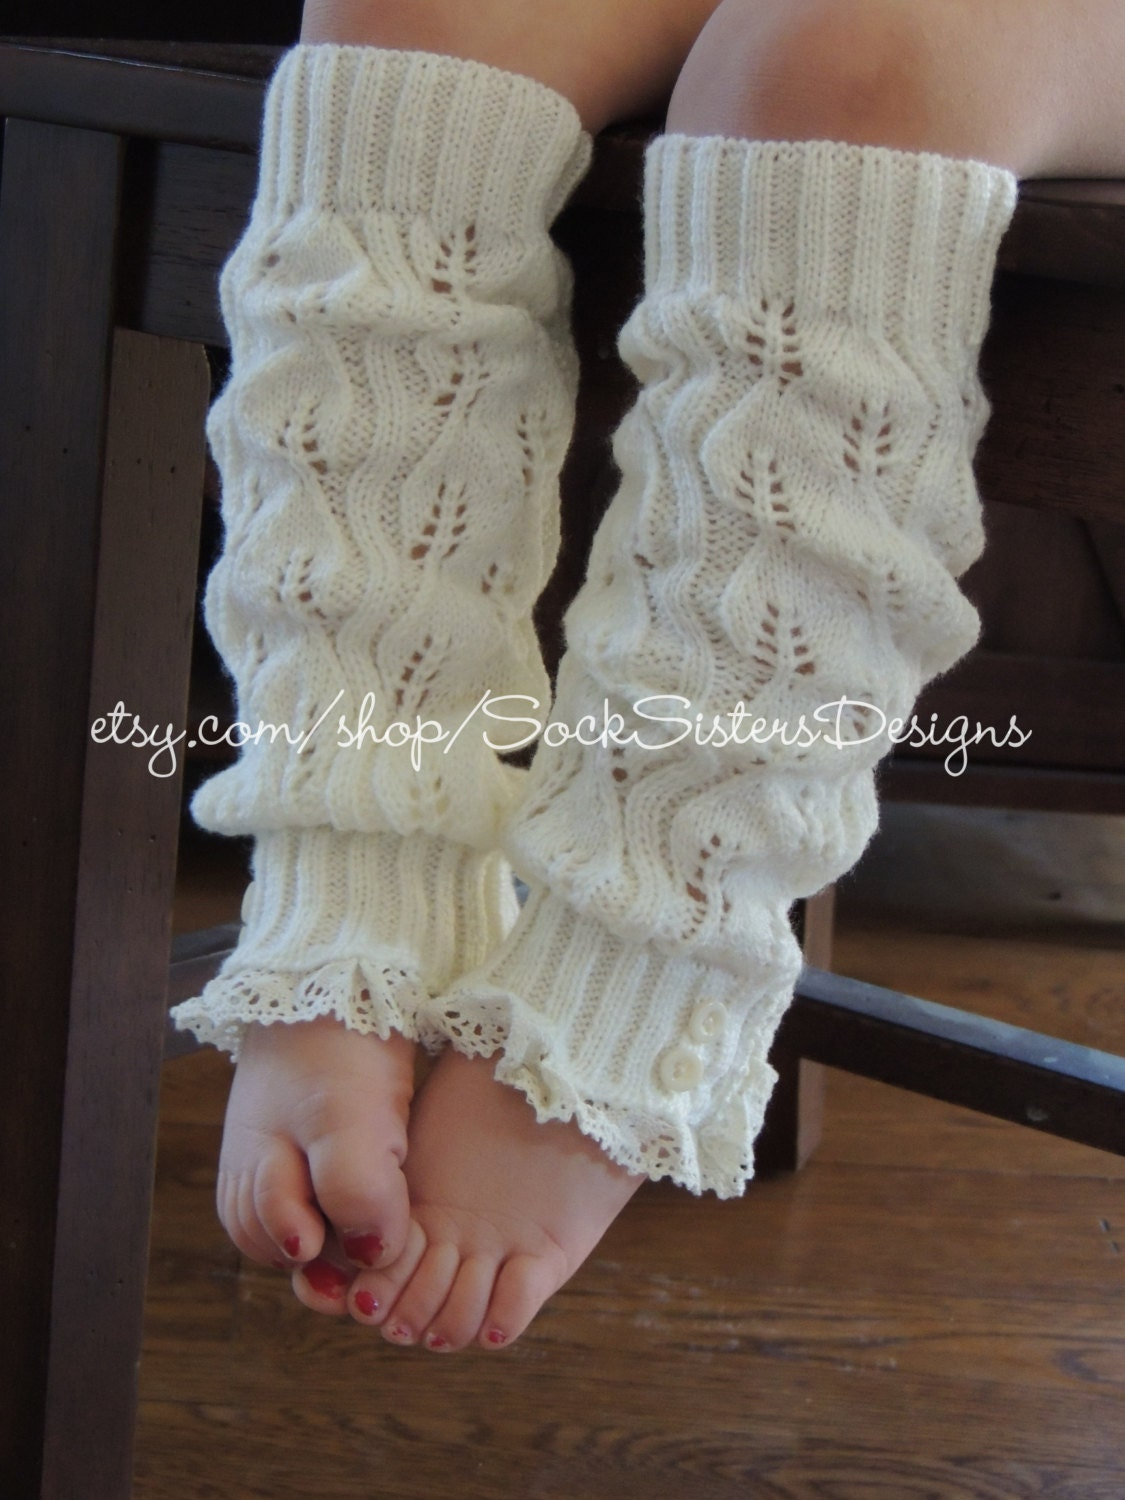 Find great deals on eBay for kids leg warmers. Shop with confidence.